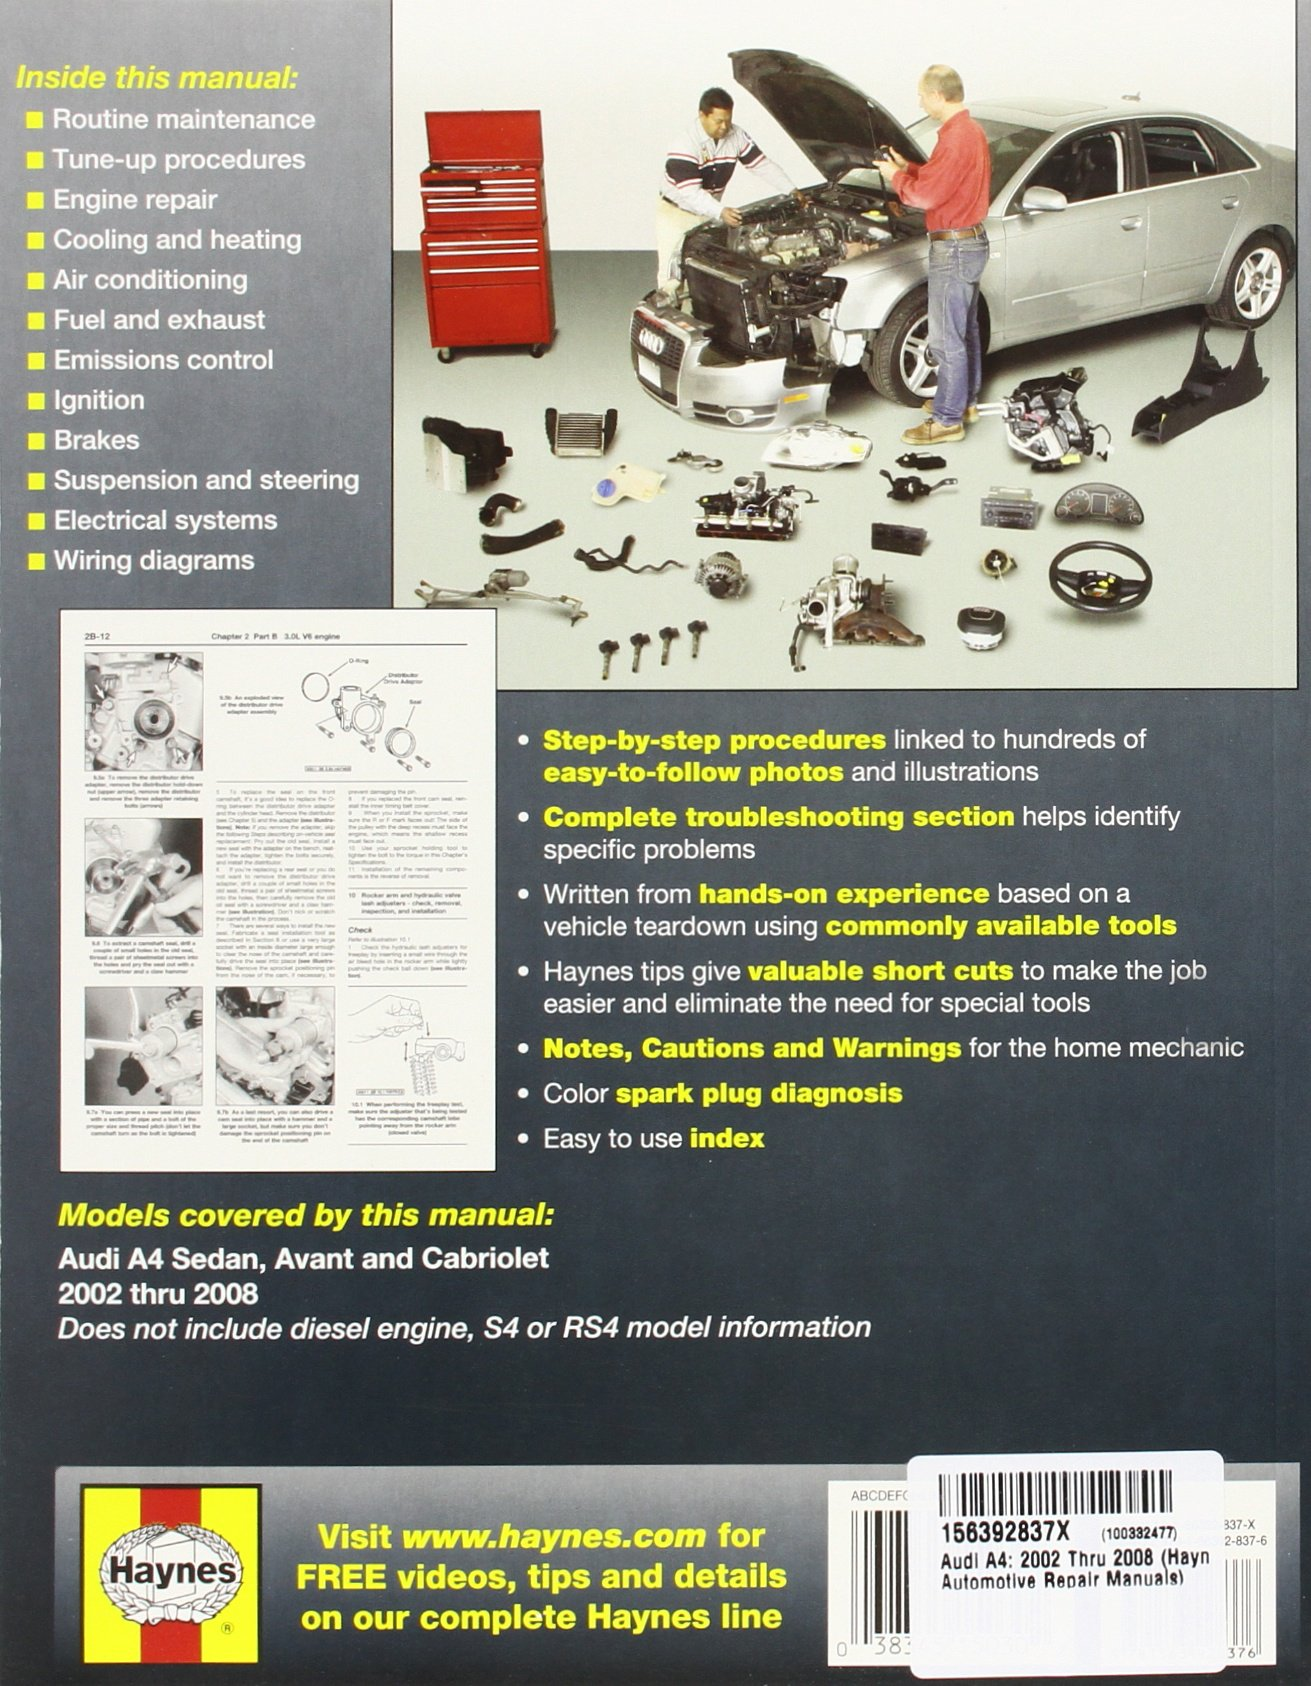 Audi A4: 02-08 (Haynes Repair Manual (Paperback)): Amazon.co.uk: Haynes  Publishing: 9781563928376: Books